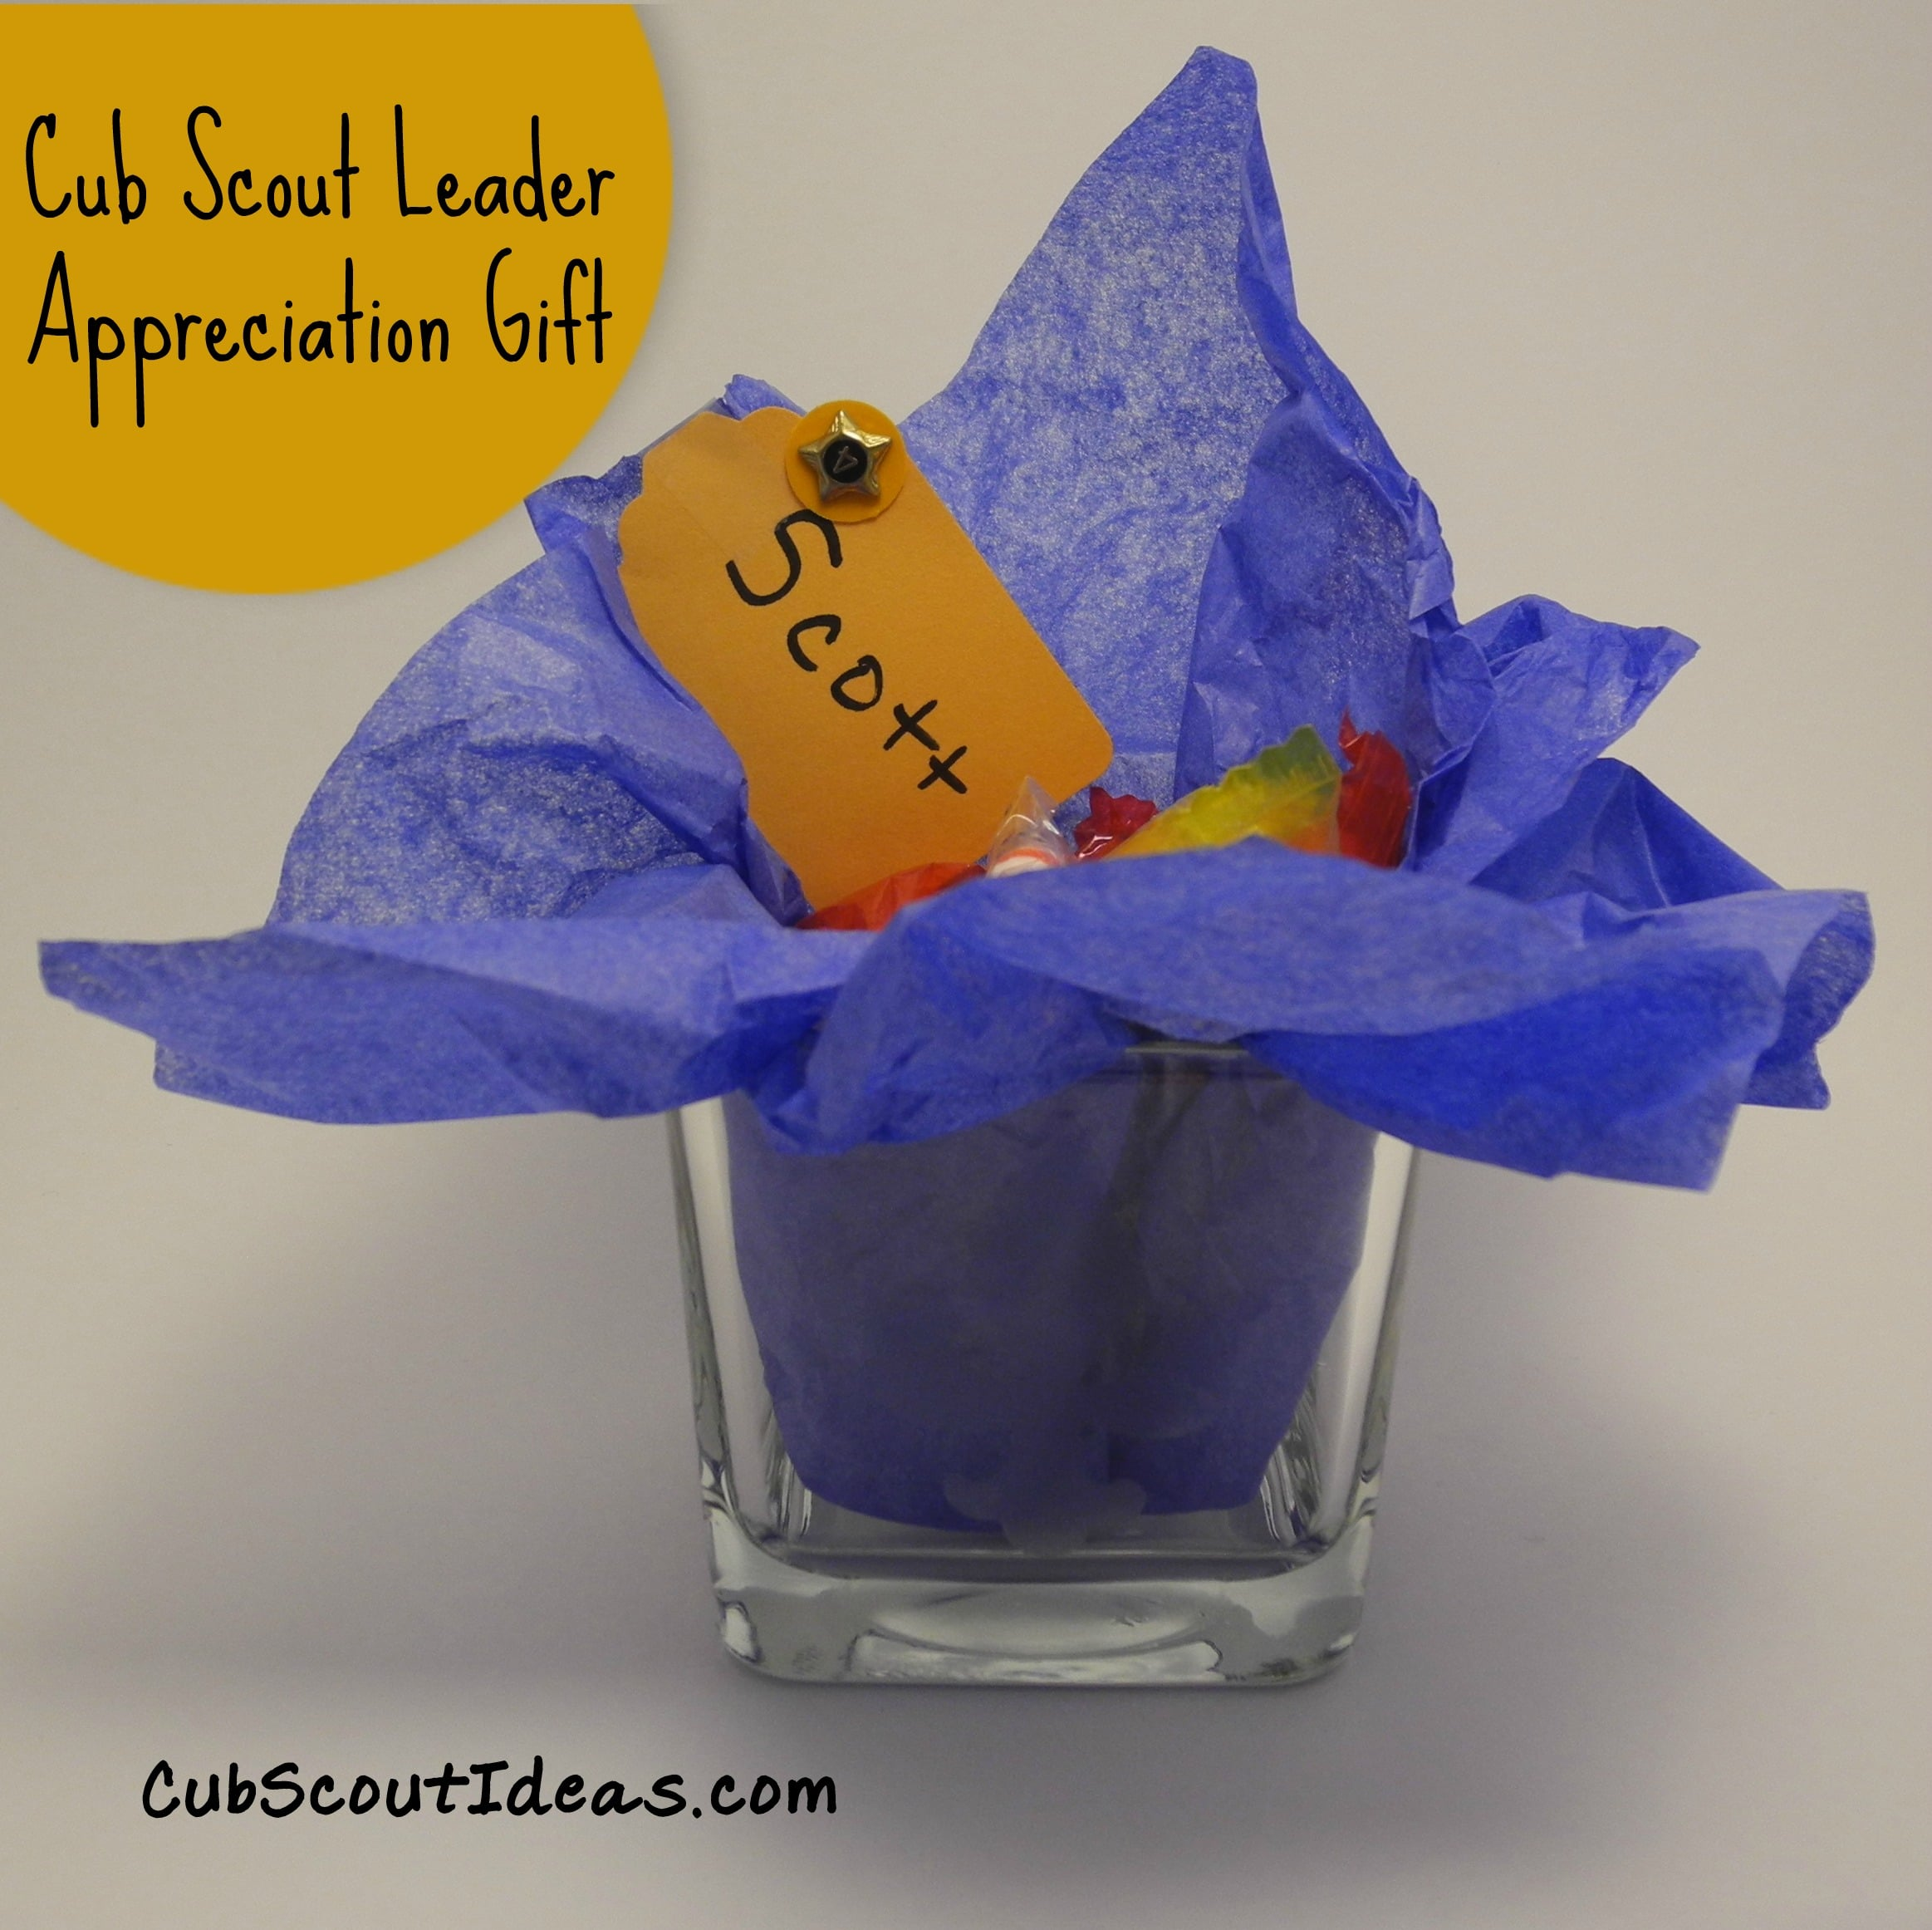 cub scout leader appreciation gift